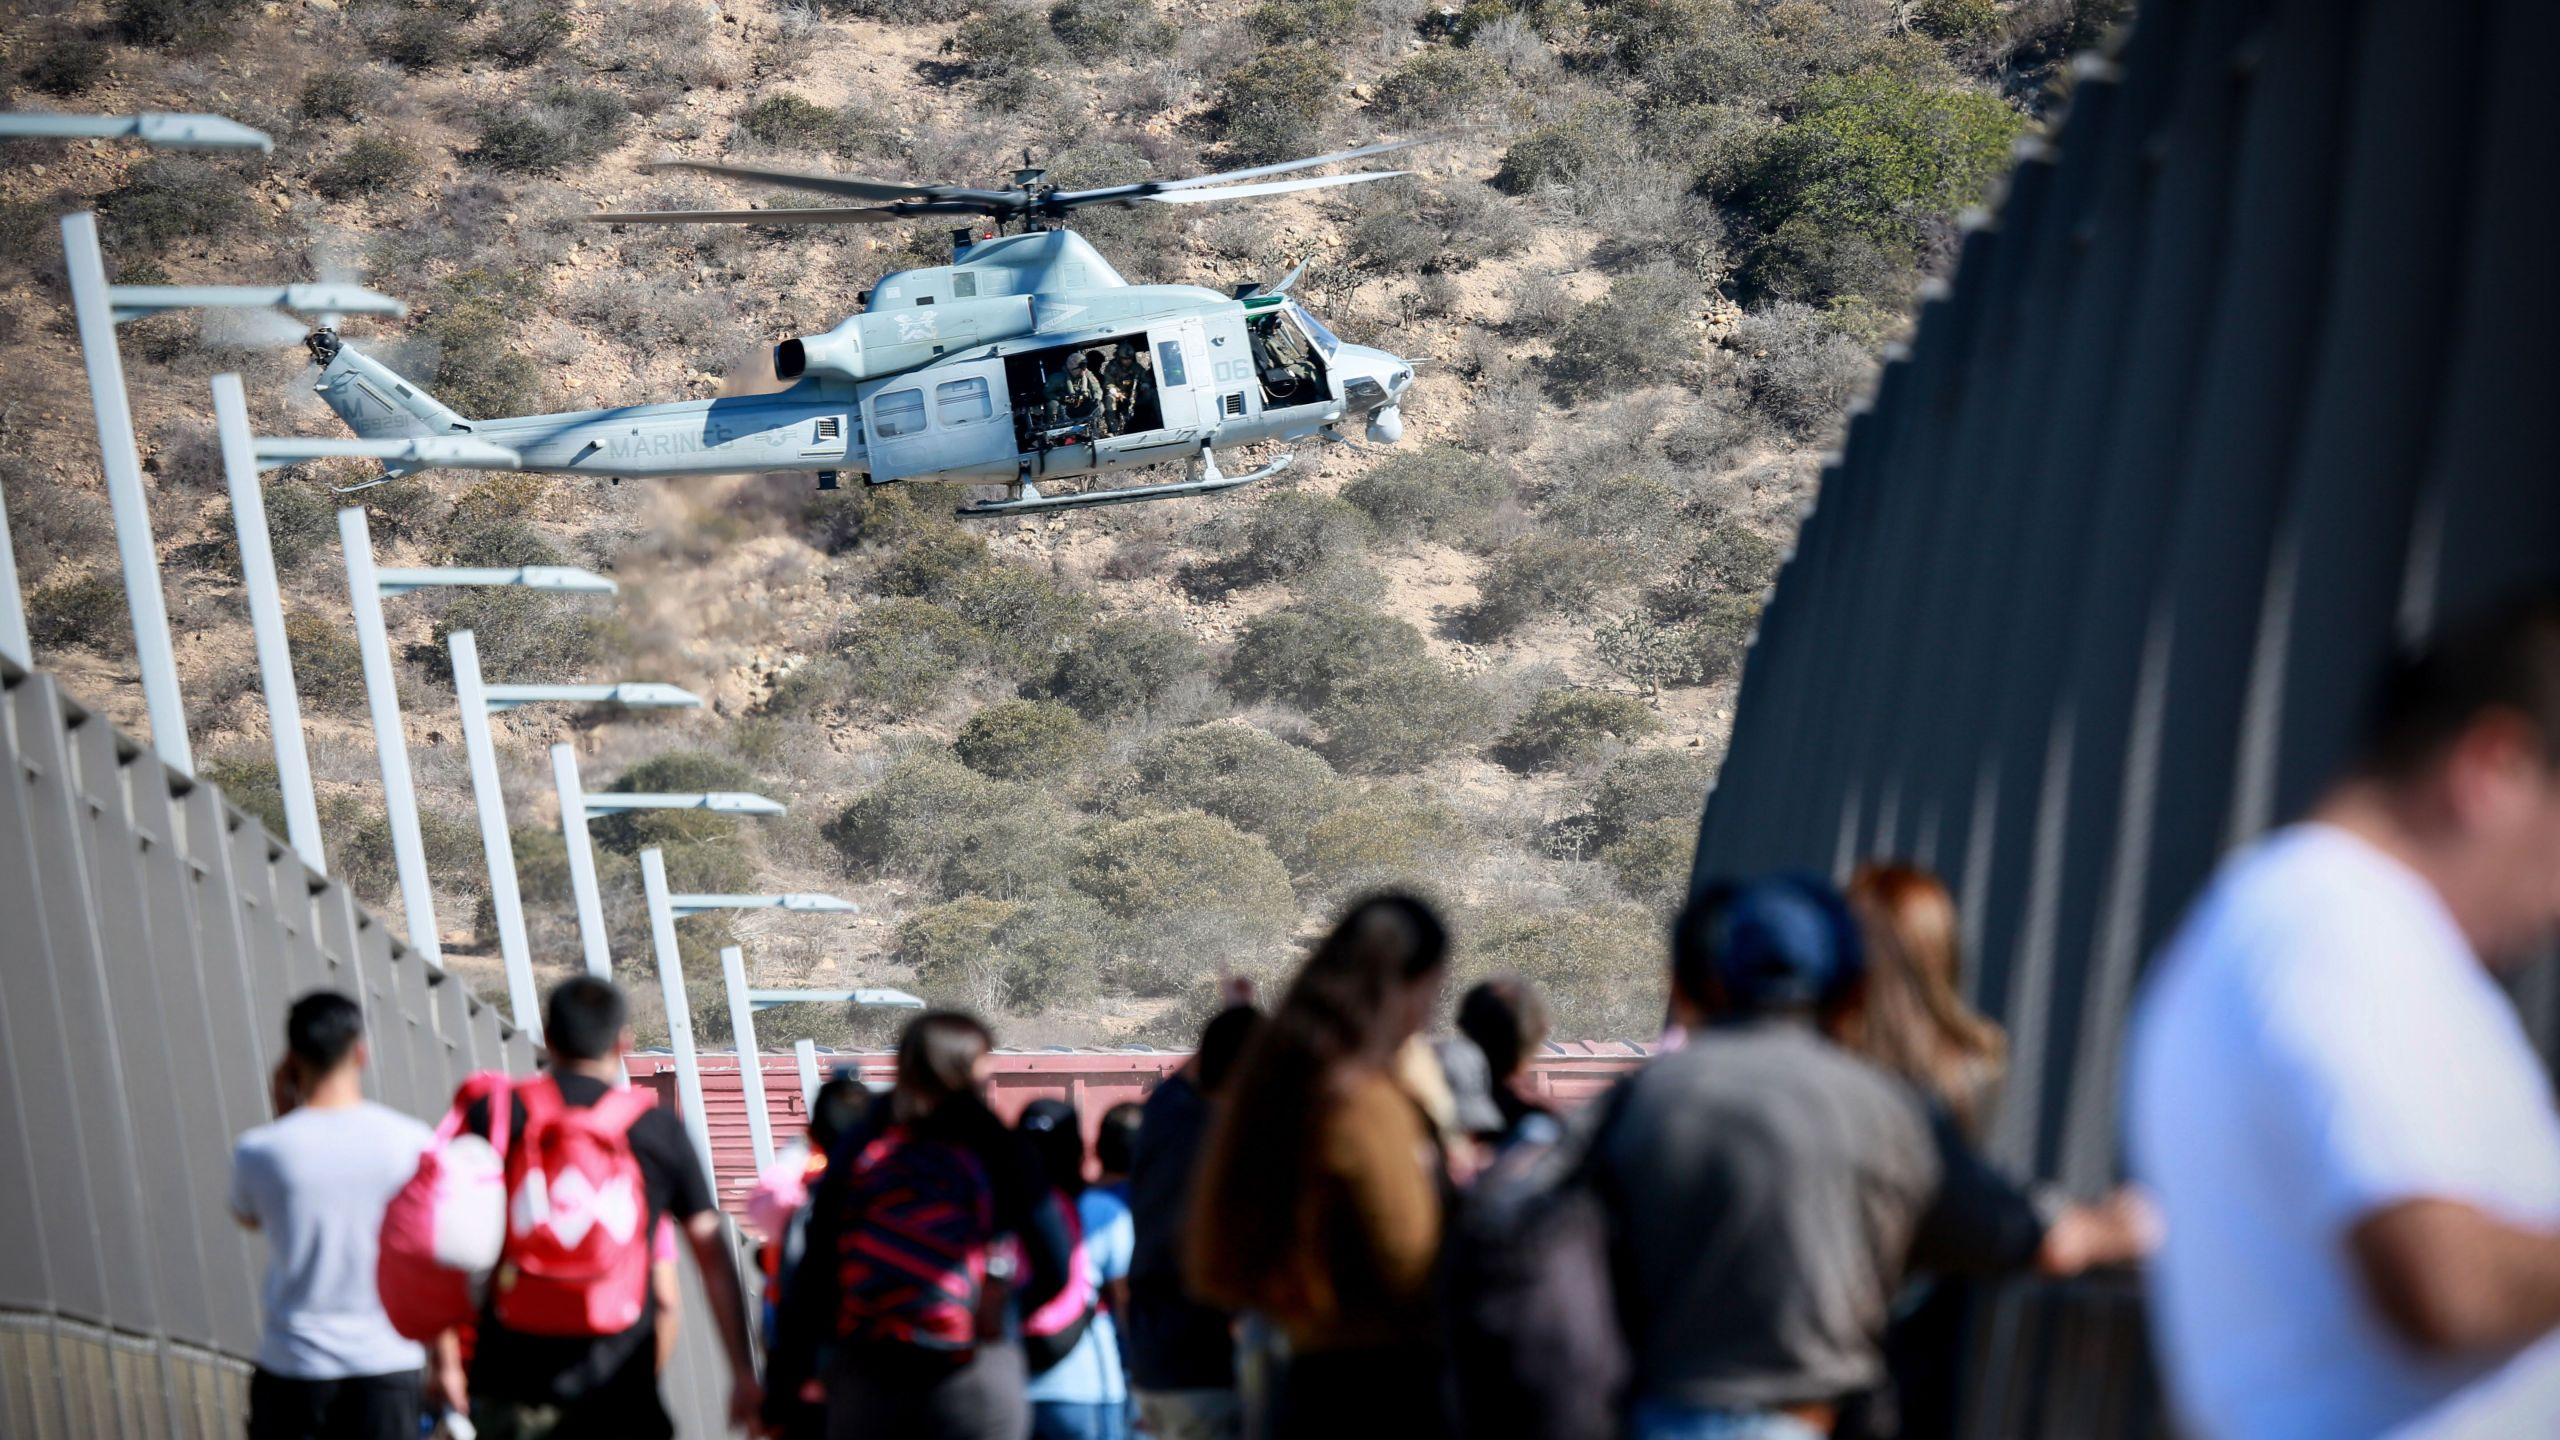 A U.S. military helicopter flies past a pedestrian bridge at the San Ysidro border crossing point south of San Diego after the closing of the U.S.-Mexico border was ordered on Nov. 25, 2018. (Credit: Sandy Huffaker / AFP / Getty Images)